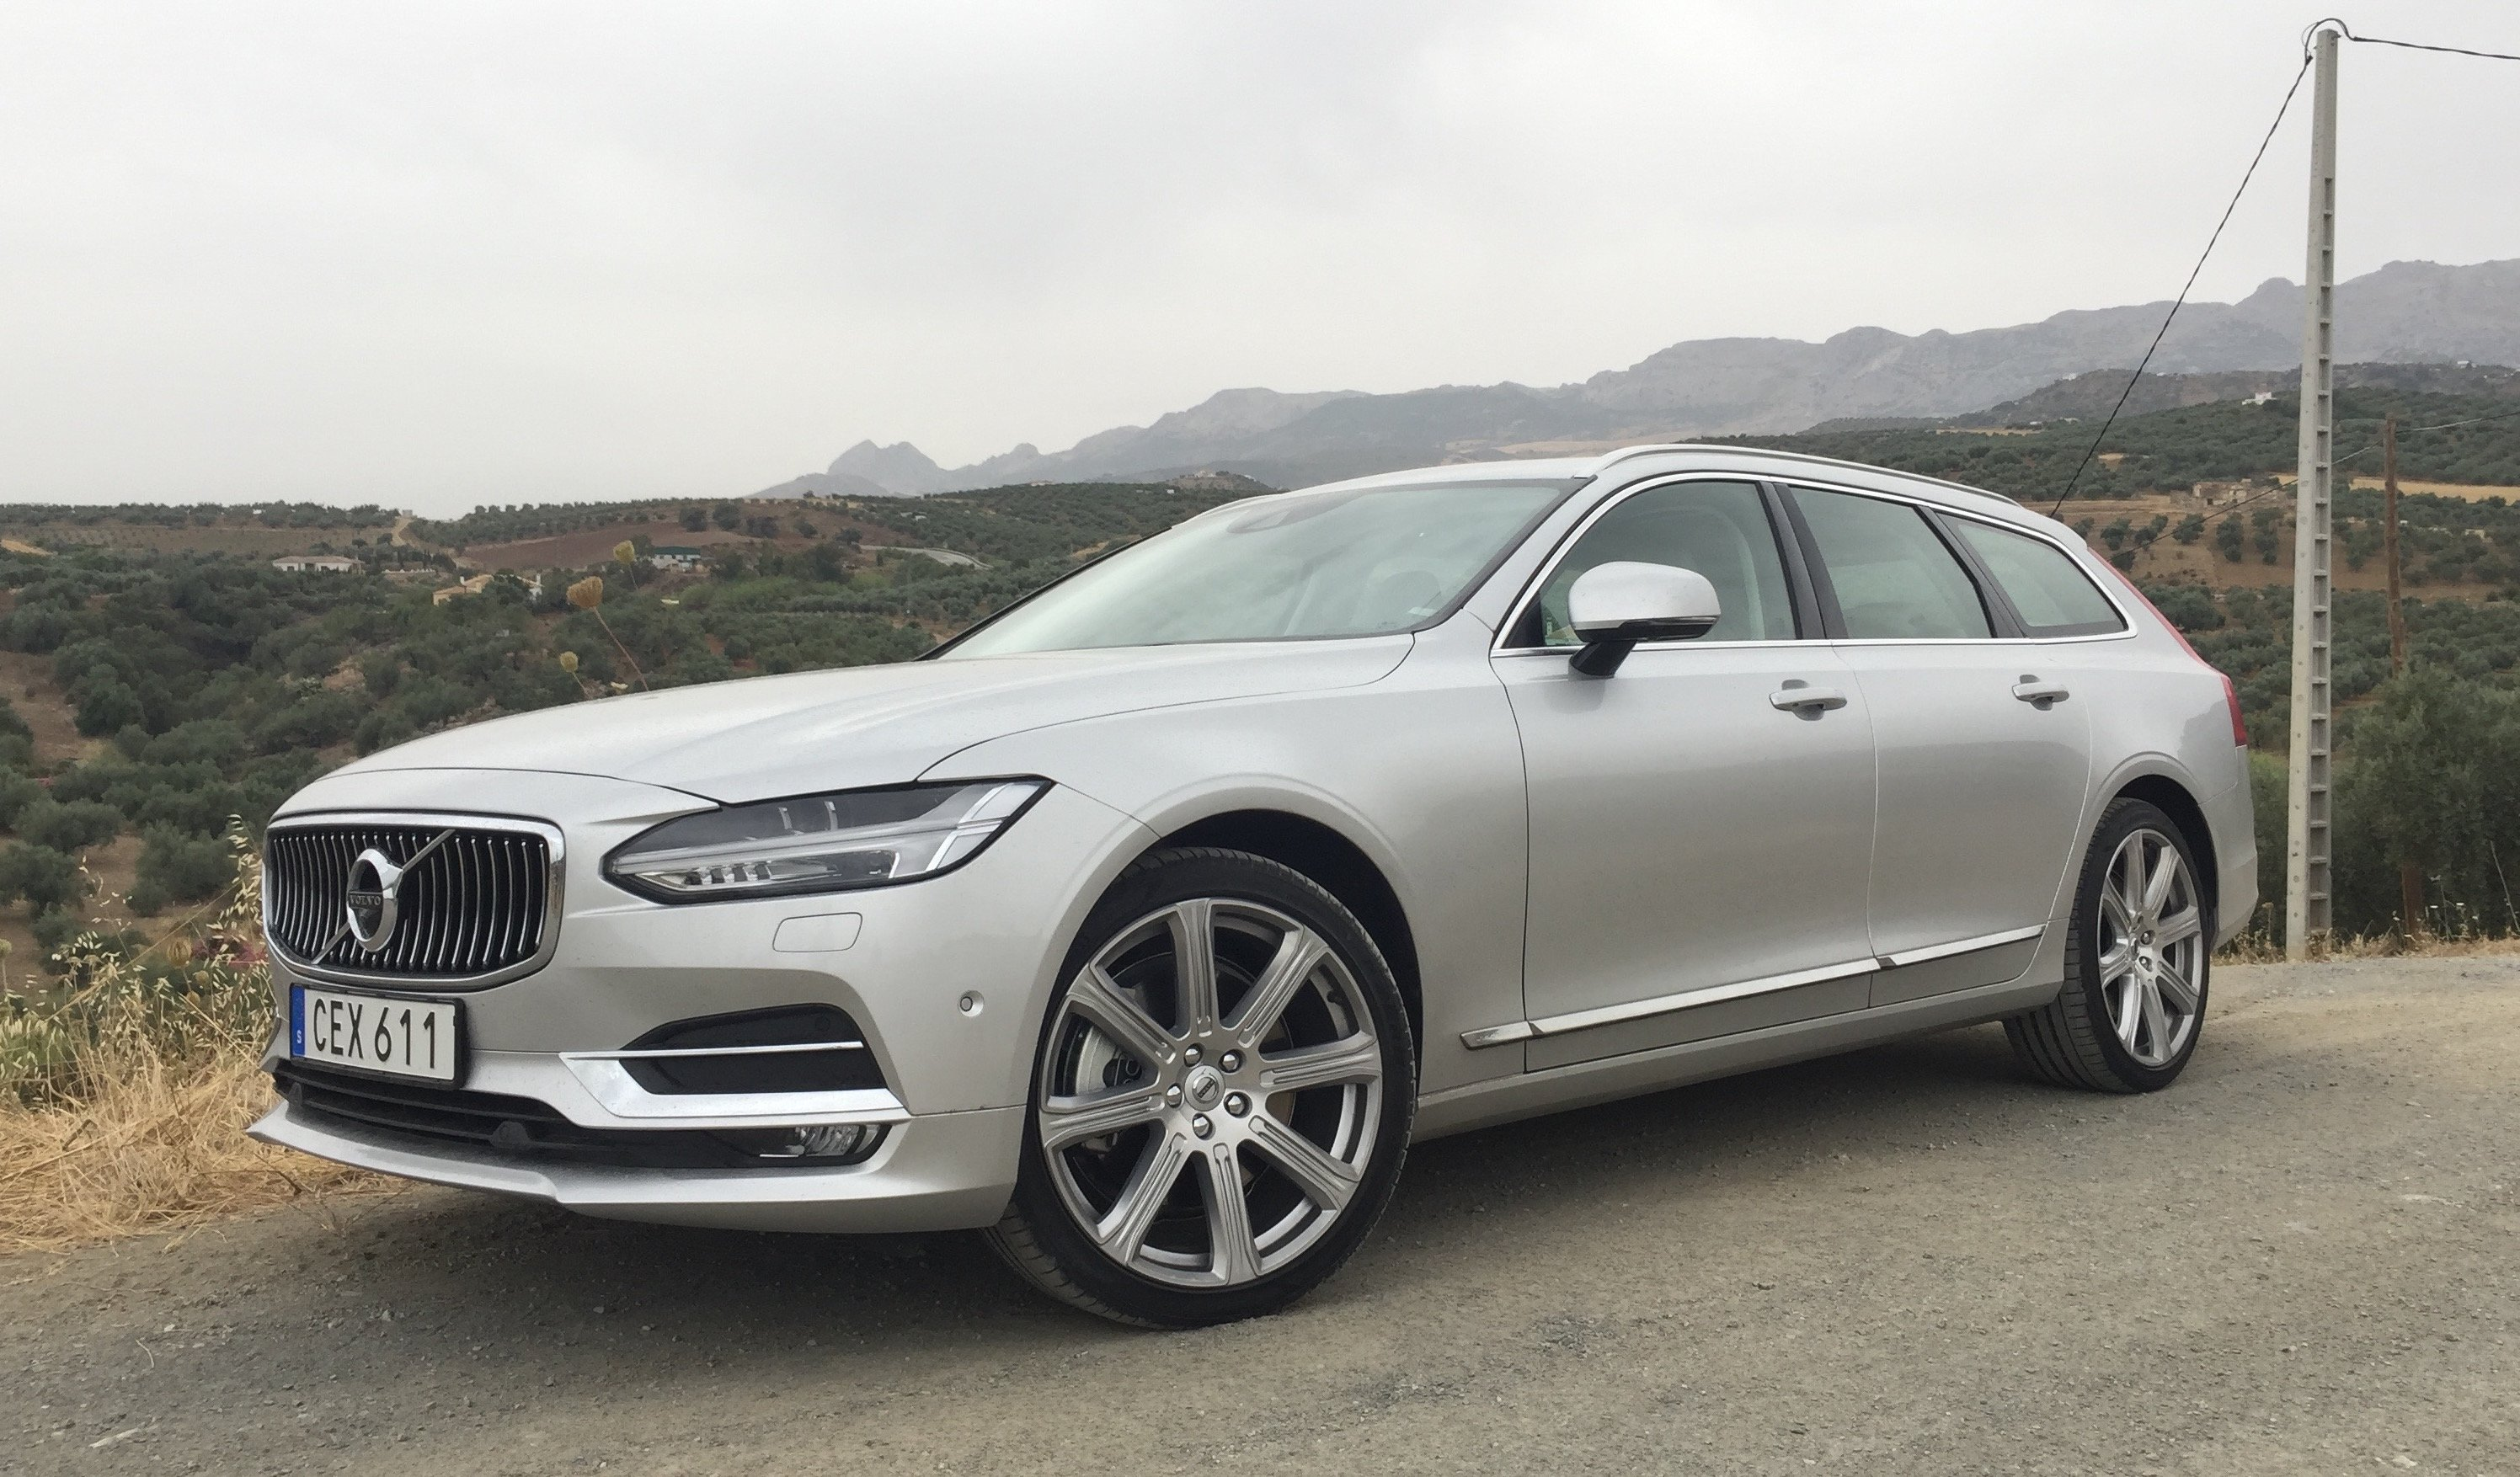 2016 Volkswagen Suv >> 2017 Volvo V90 Review - photos | CarAdvice